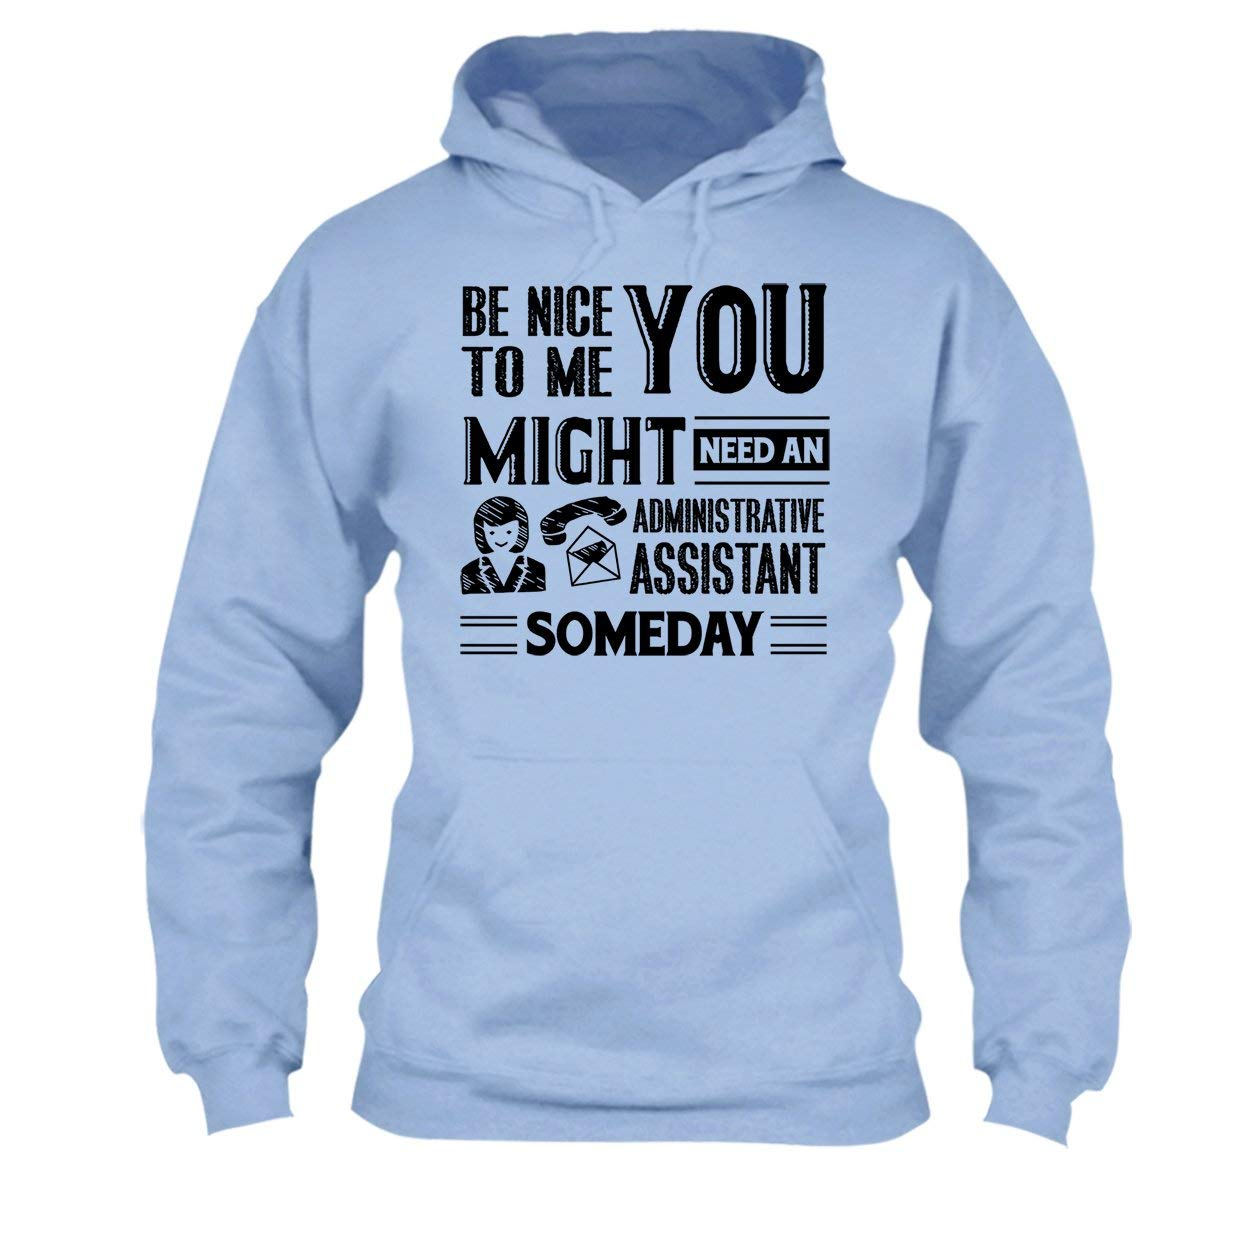 Sweatshirt Design Tee Shirt Be Nice to Administrative Assistant T Shirt